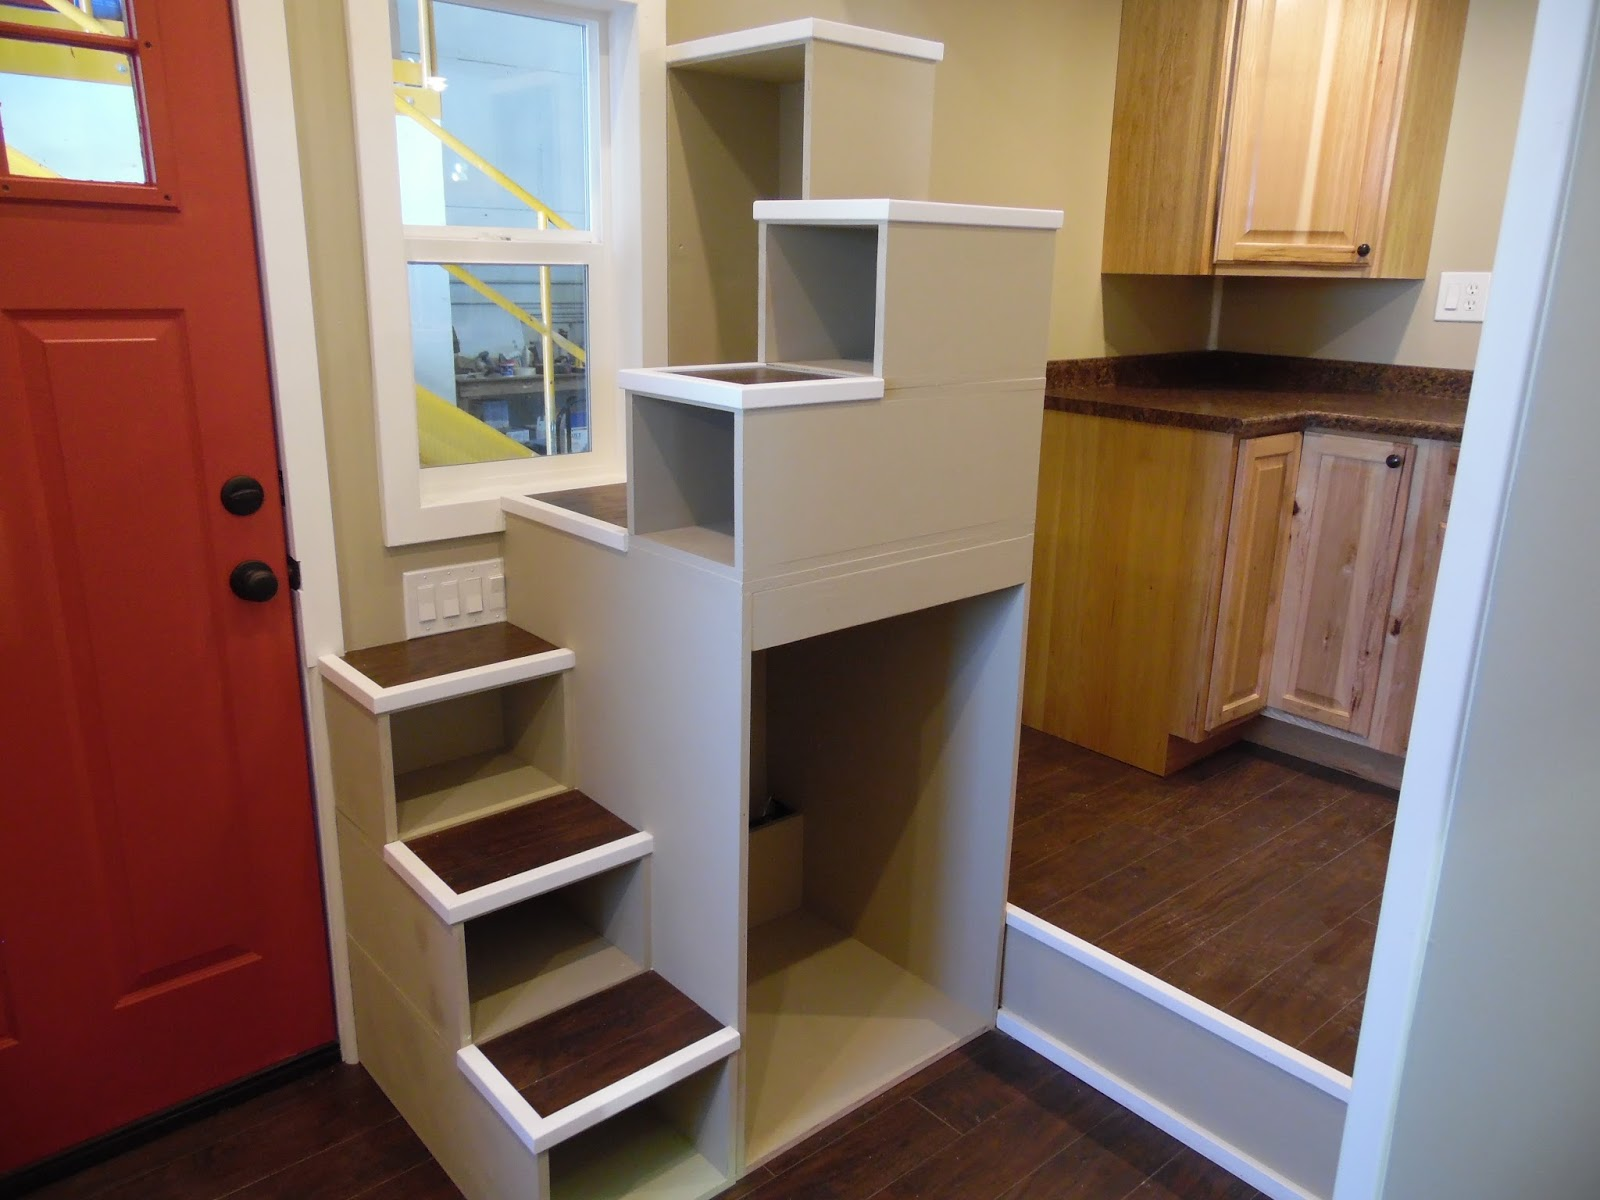 The Birchwood by Upper Valley Tiny Homes stair cabinets